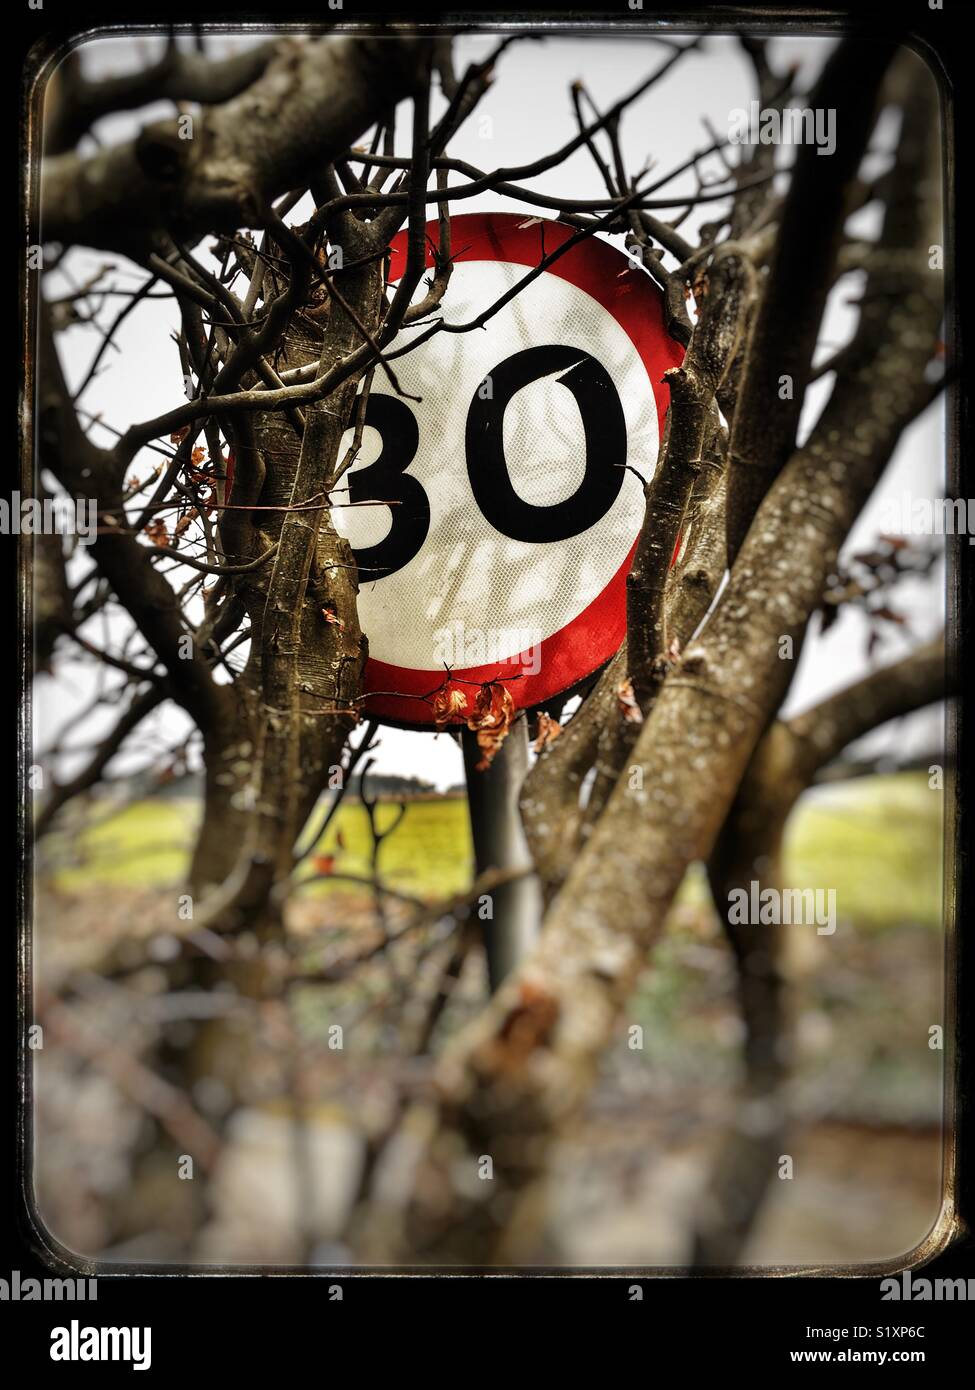 A hedge partly covering a 30mph road sign, Alderton, Suffolk, England. - Stock Image